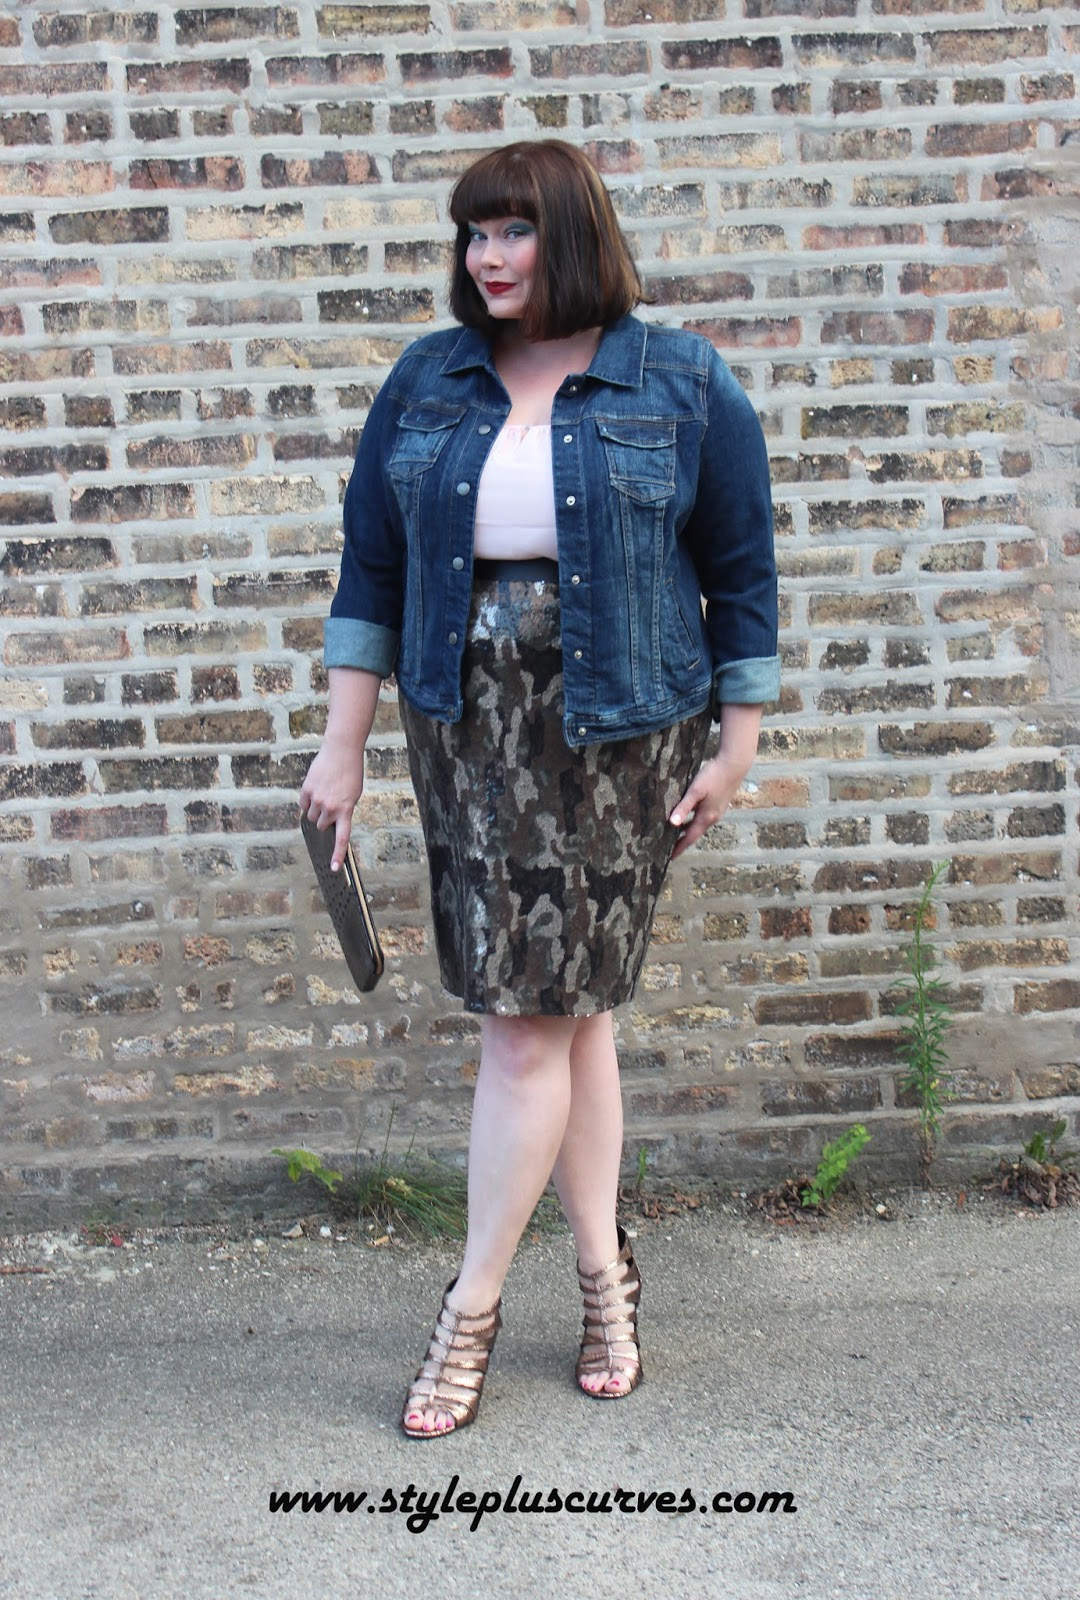 70f89be2b033c Amber from Style Plus Curves wears a Lane Bryant Camo Sequin Skirt and a  Denim Jacket